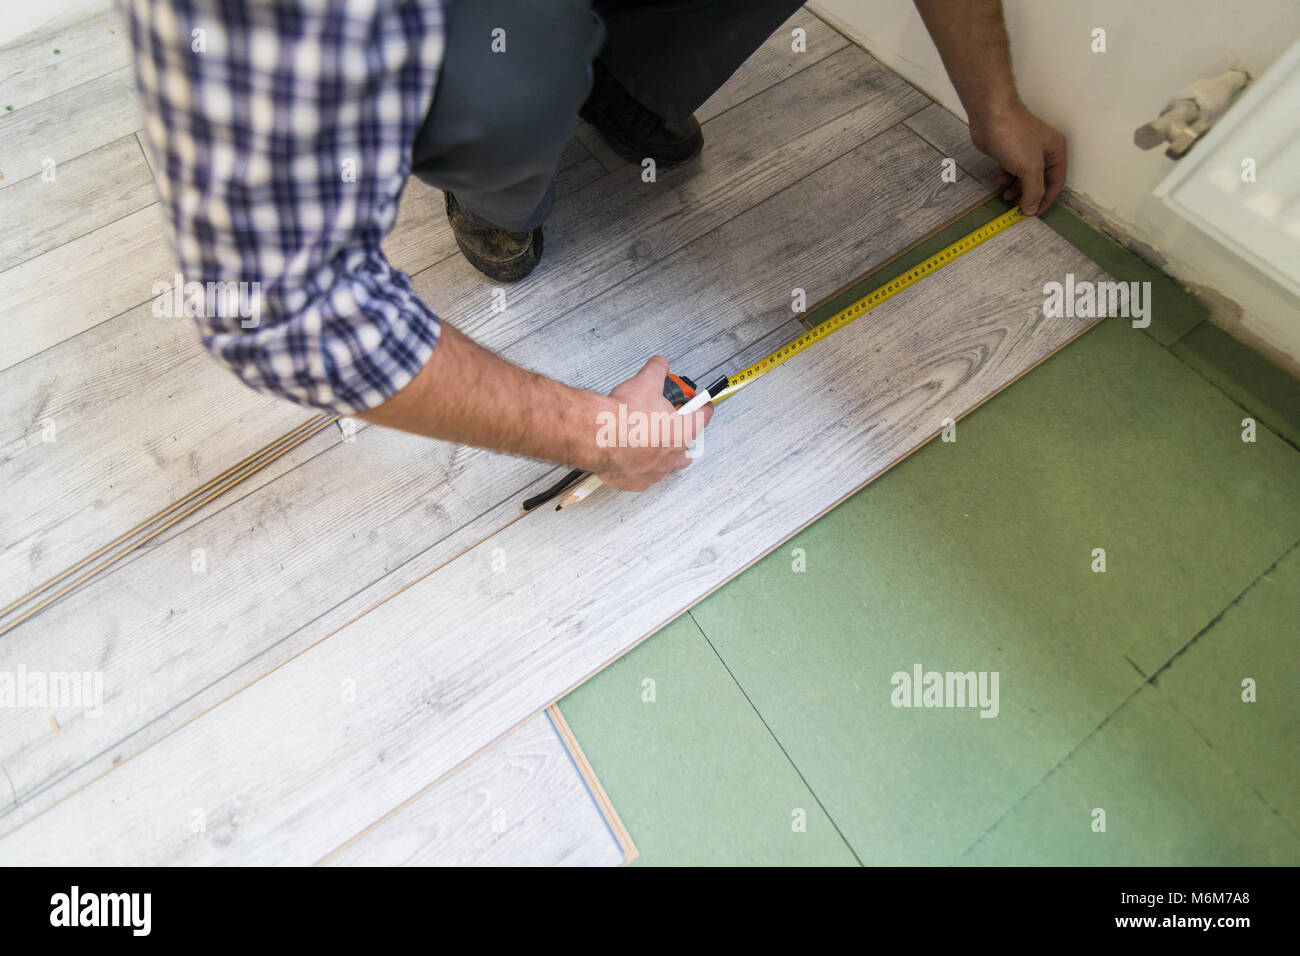 Close-up Of A Worker Drawing A Mark On Laminate Using Ruler - Stock Image